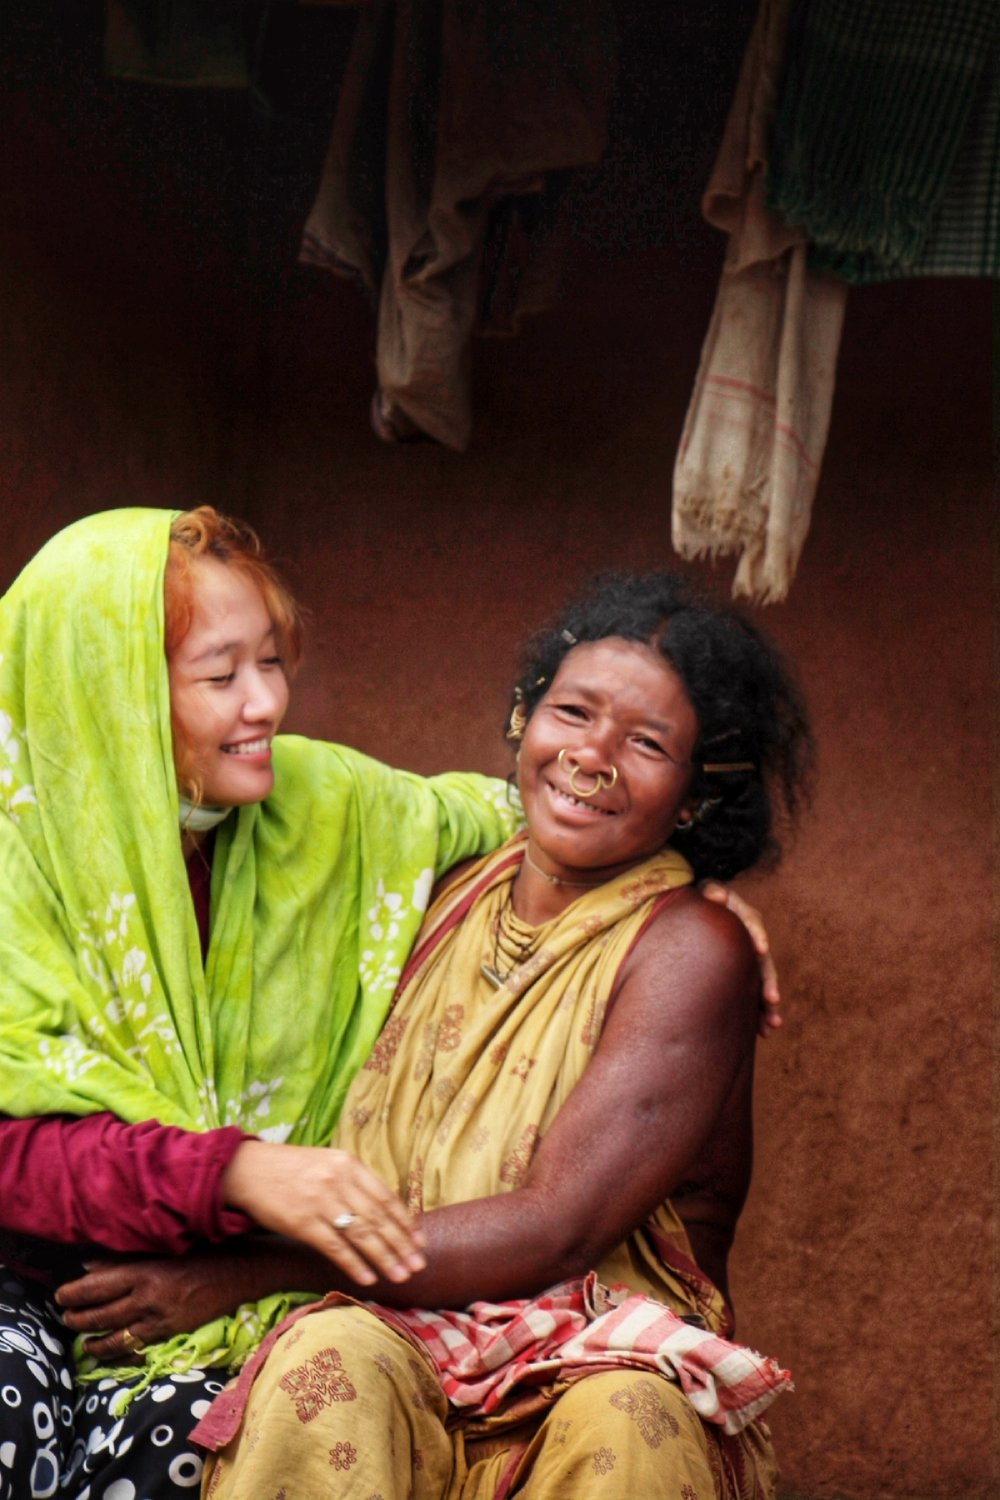 Laughing and showing affection toward each other despite the language barrier